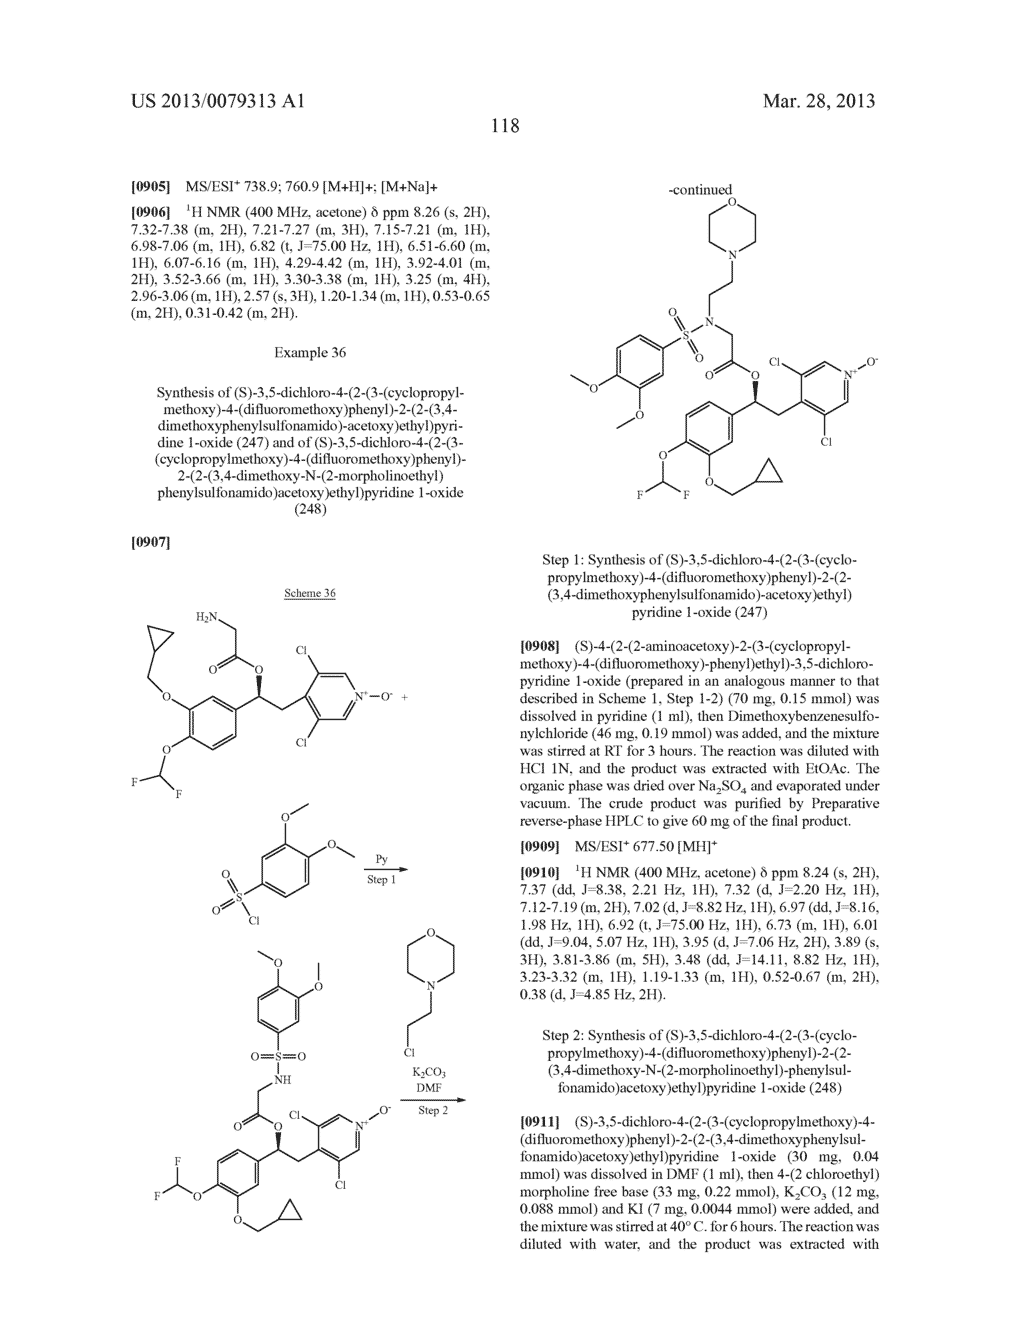 DERIVATIVES OF 1-PHENYL-2-PYRIDINYL ALKYL ALCOHOLS AS PHOSPHODIESTERASE     INHIBITORS - diagram, schematic, and image 119